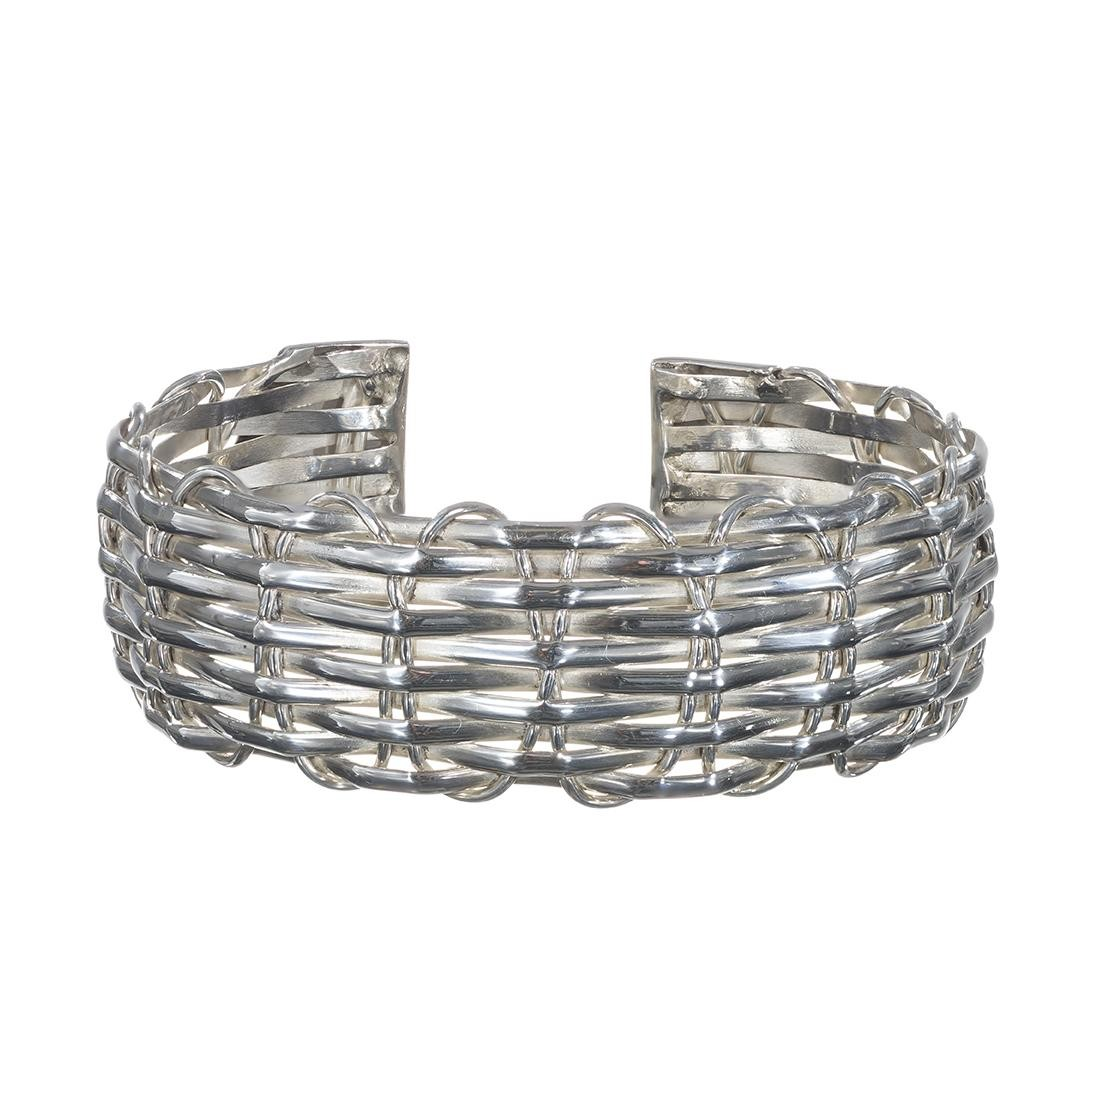 Twisted Woven Silver Cuff Bangle Bracelet